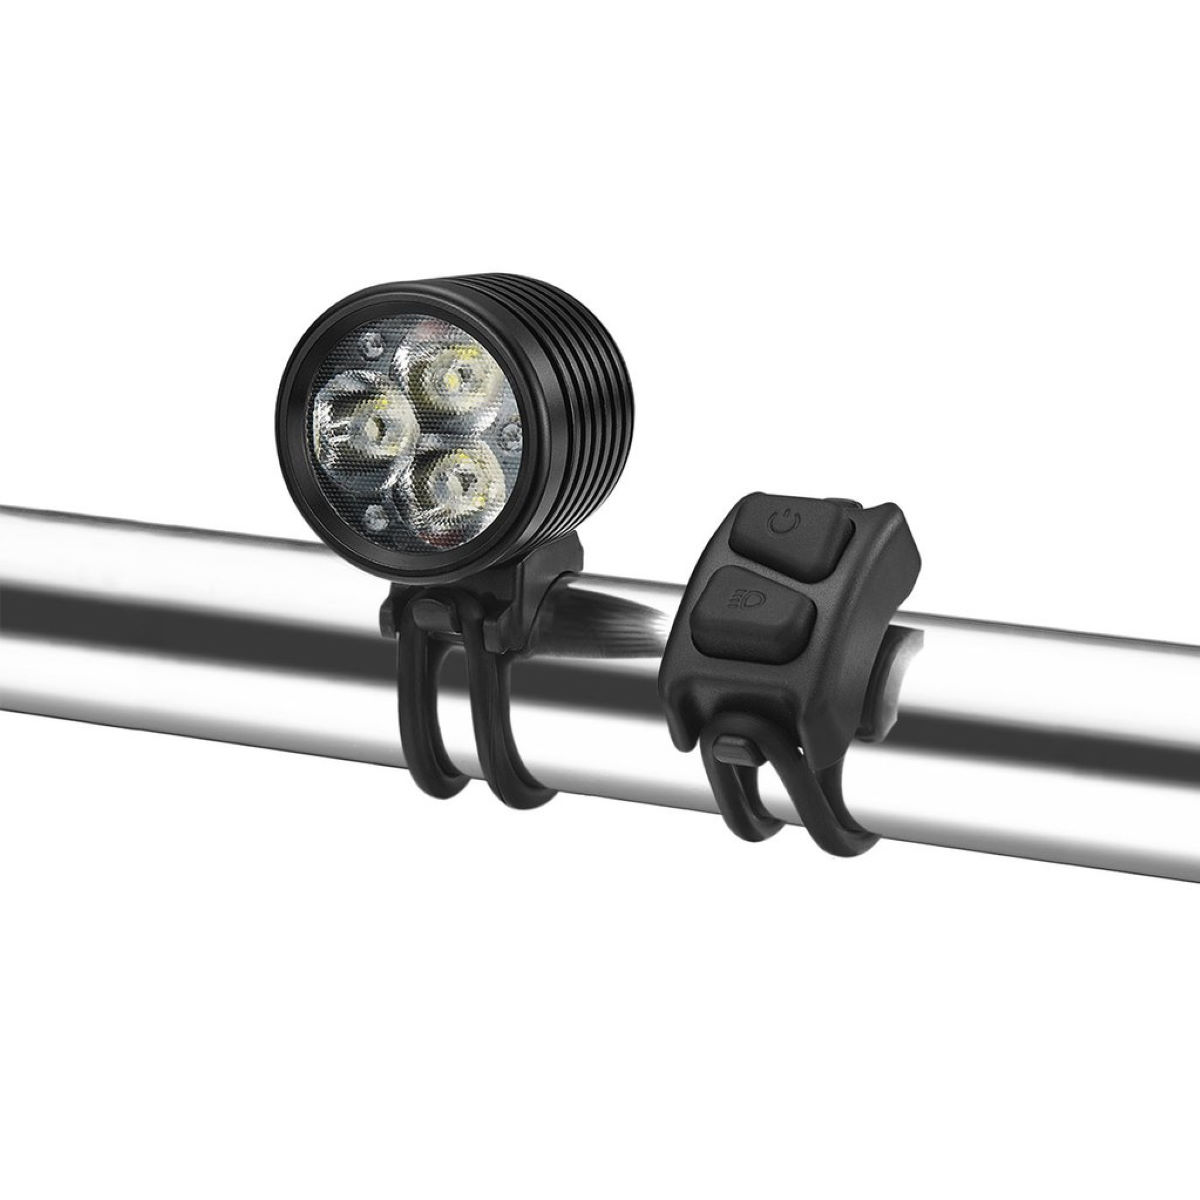 Gemini Olympia 2100L Light Set (4-Cell) - Luces delanteras